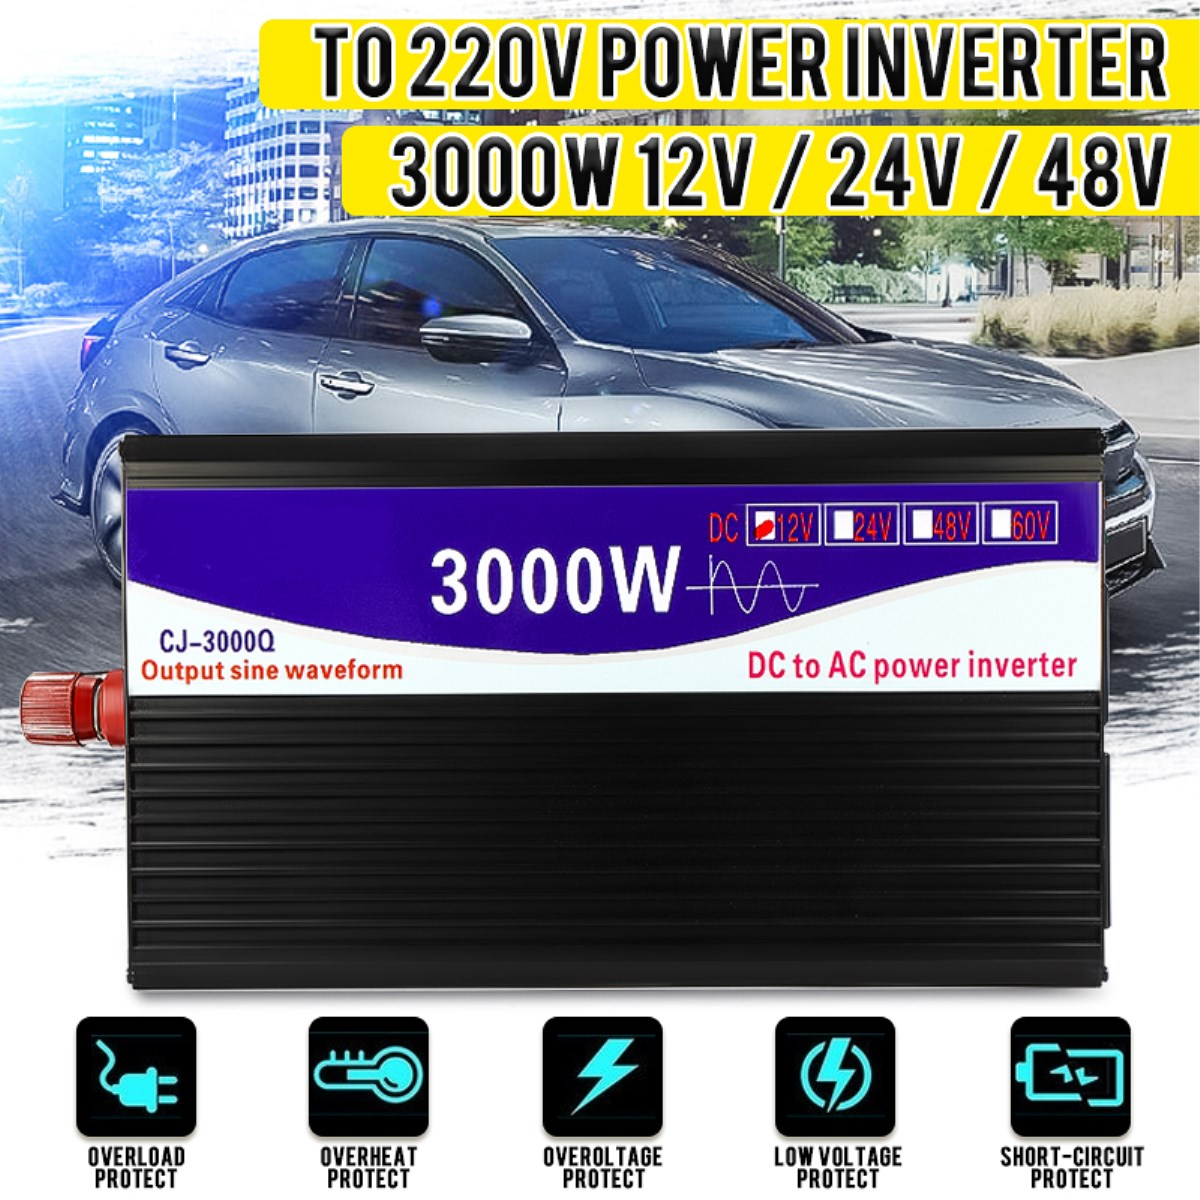 <font><b>Inverter</b></font> 12V/<font><b>24V</b></font>/48V to <font><b>220V</b></font> <font><b>2000W</b></font> 3000W Voltage Transformer Converter Pure Sine Wave Power <font><b>Inverter</b></font> Double LCD display image